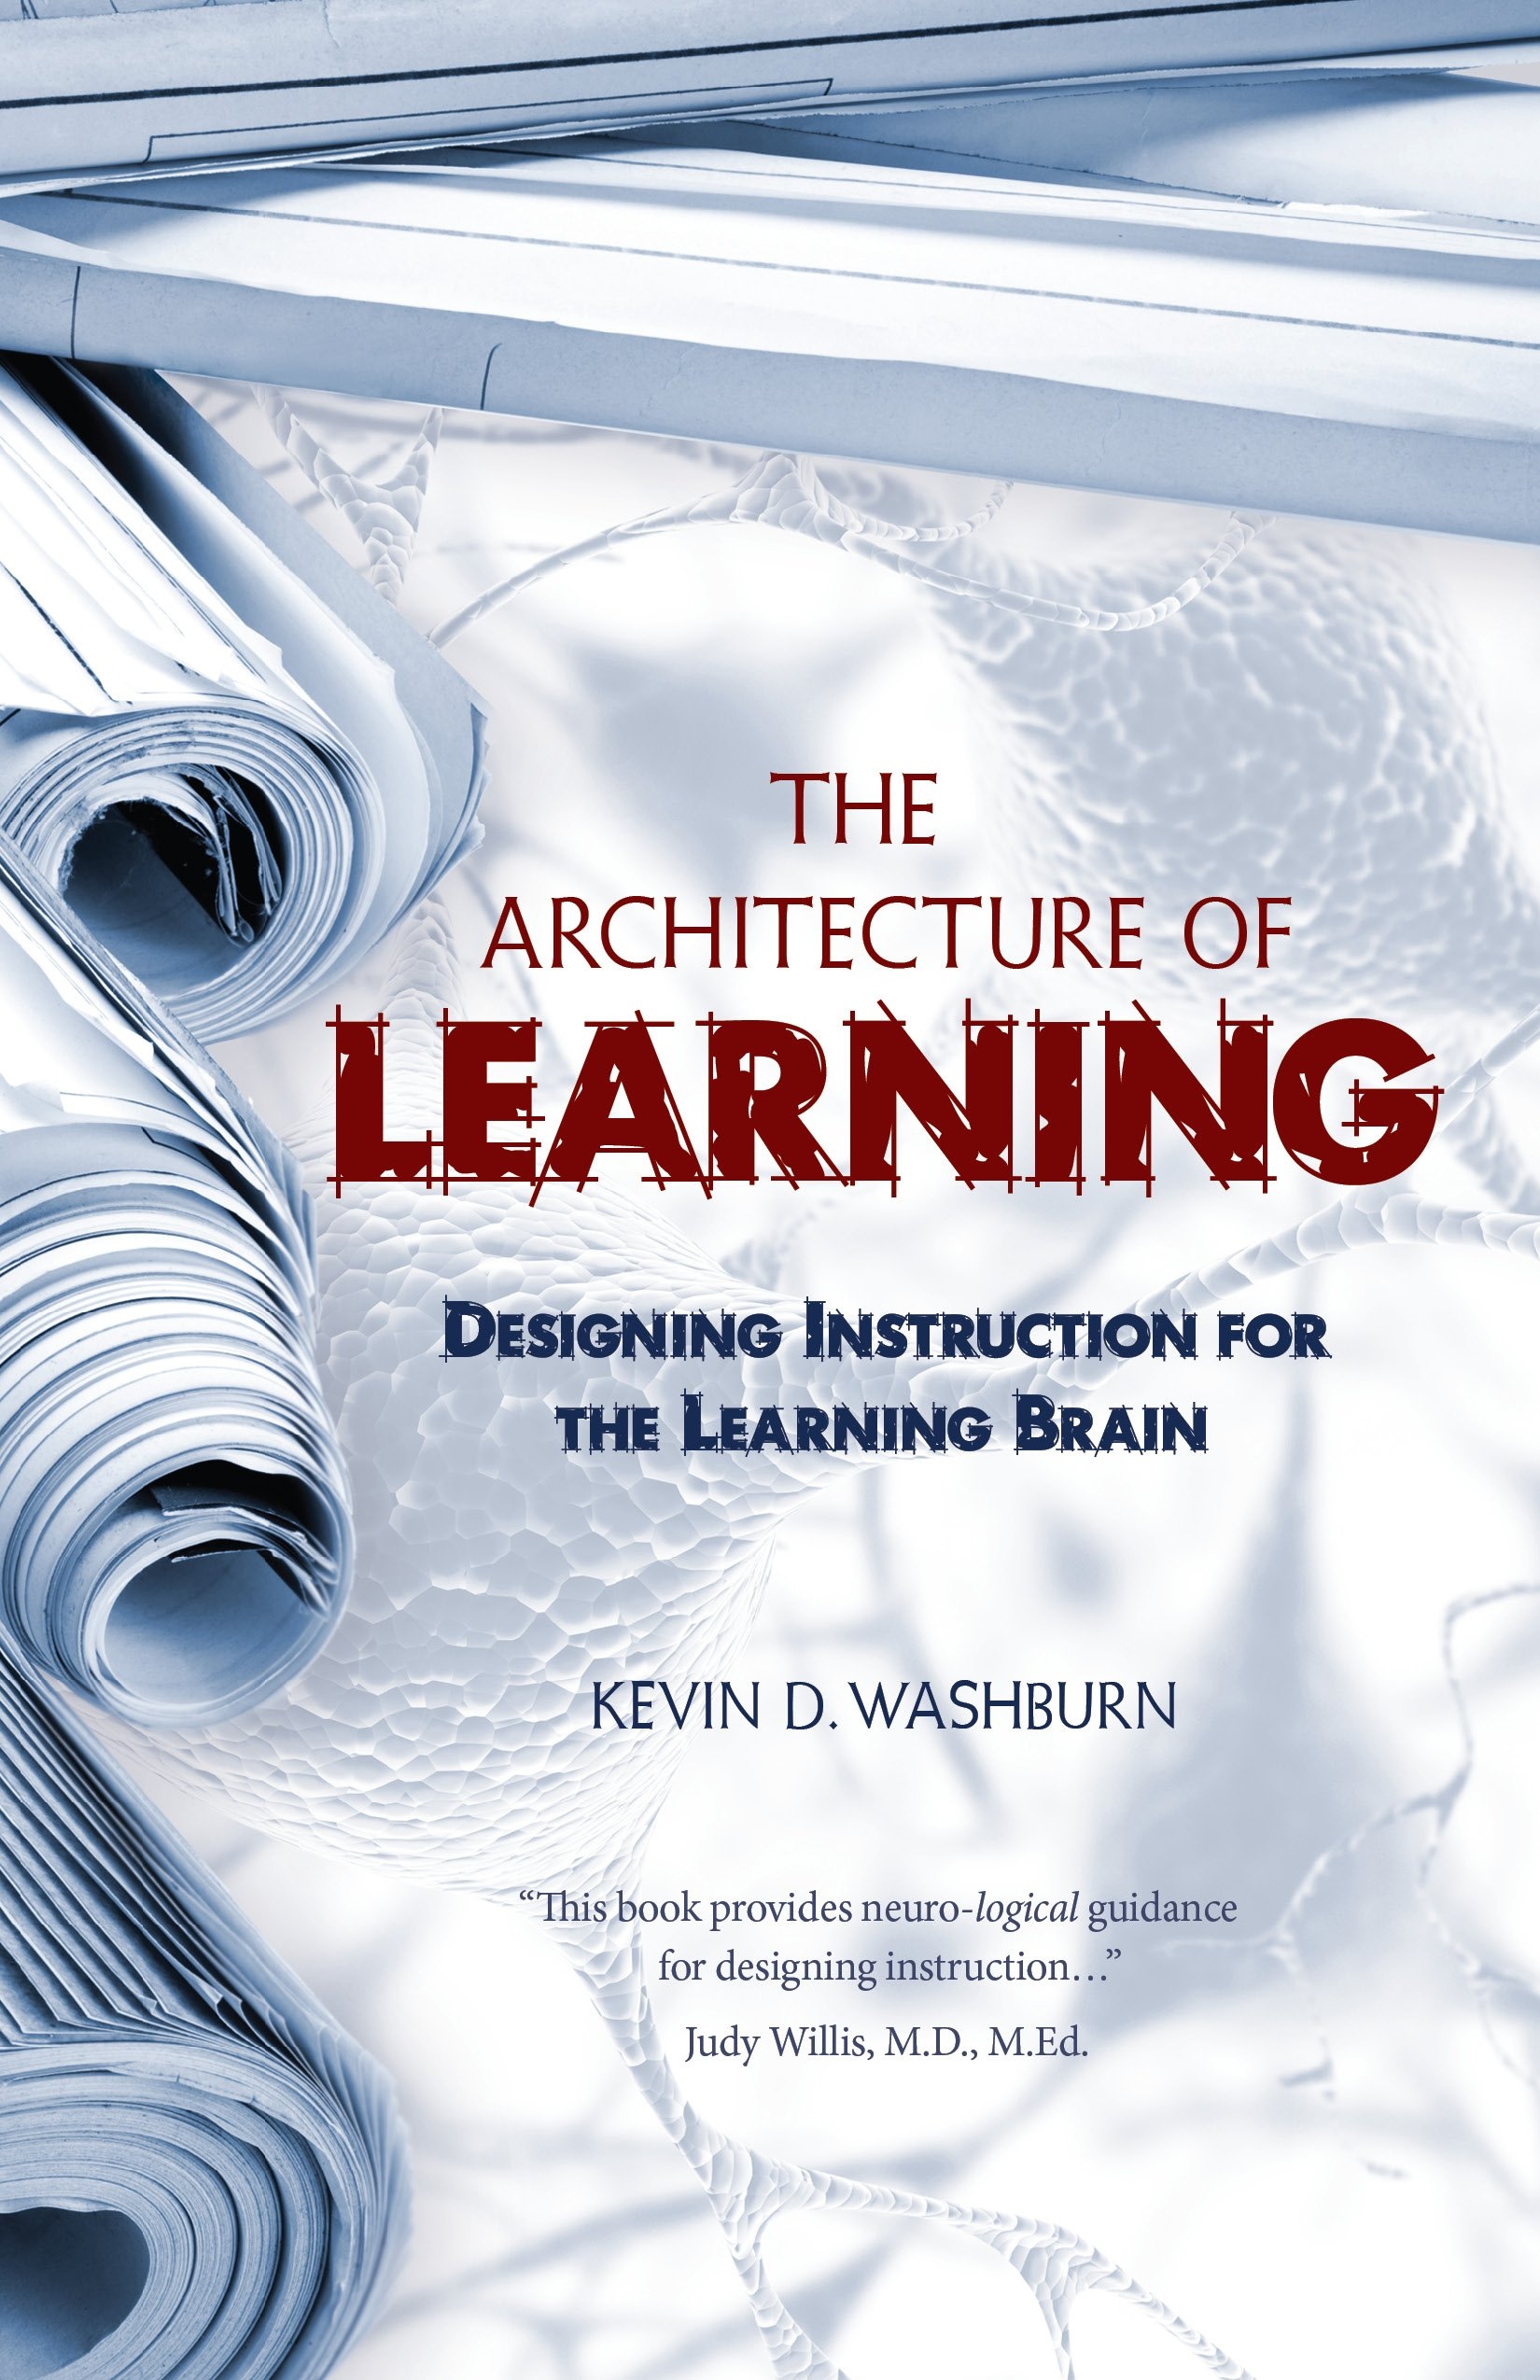 The Architecture Of Learning Designing Instruction For The Learning Brain Kevin D Washburn 9780984345908 Amazon Com Books